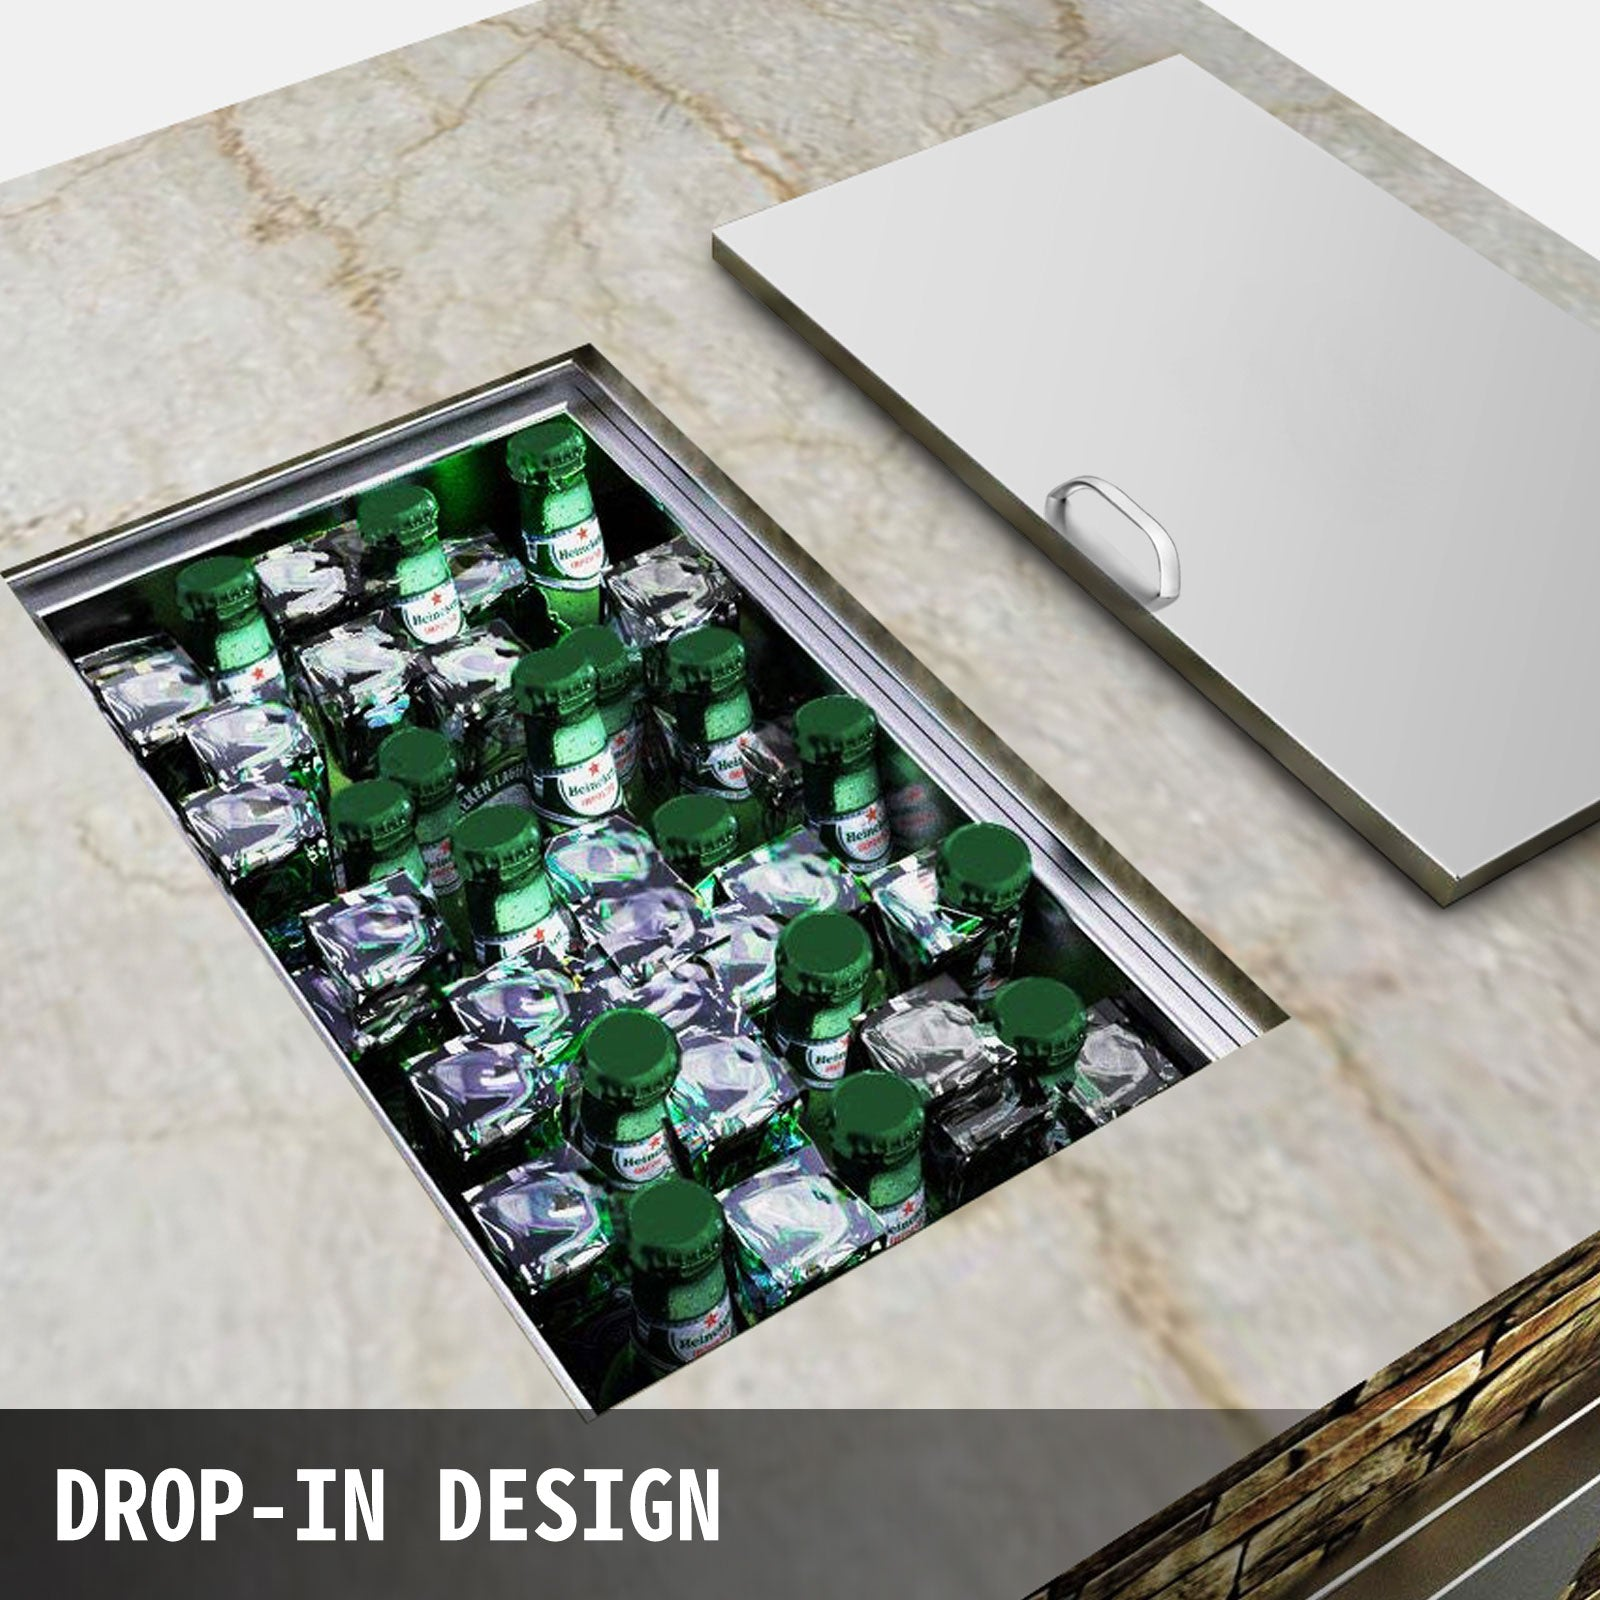 Drop In Ice Chest Bin Kitchen 58x43 Cm Beer Ice Box W/thick Lid Outdoor/indoor